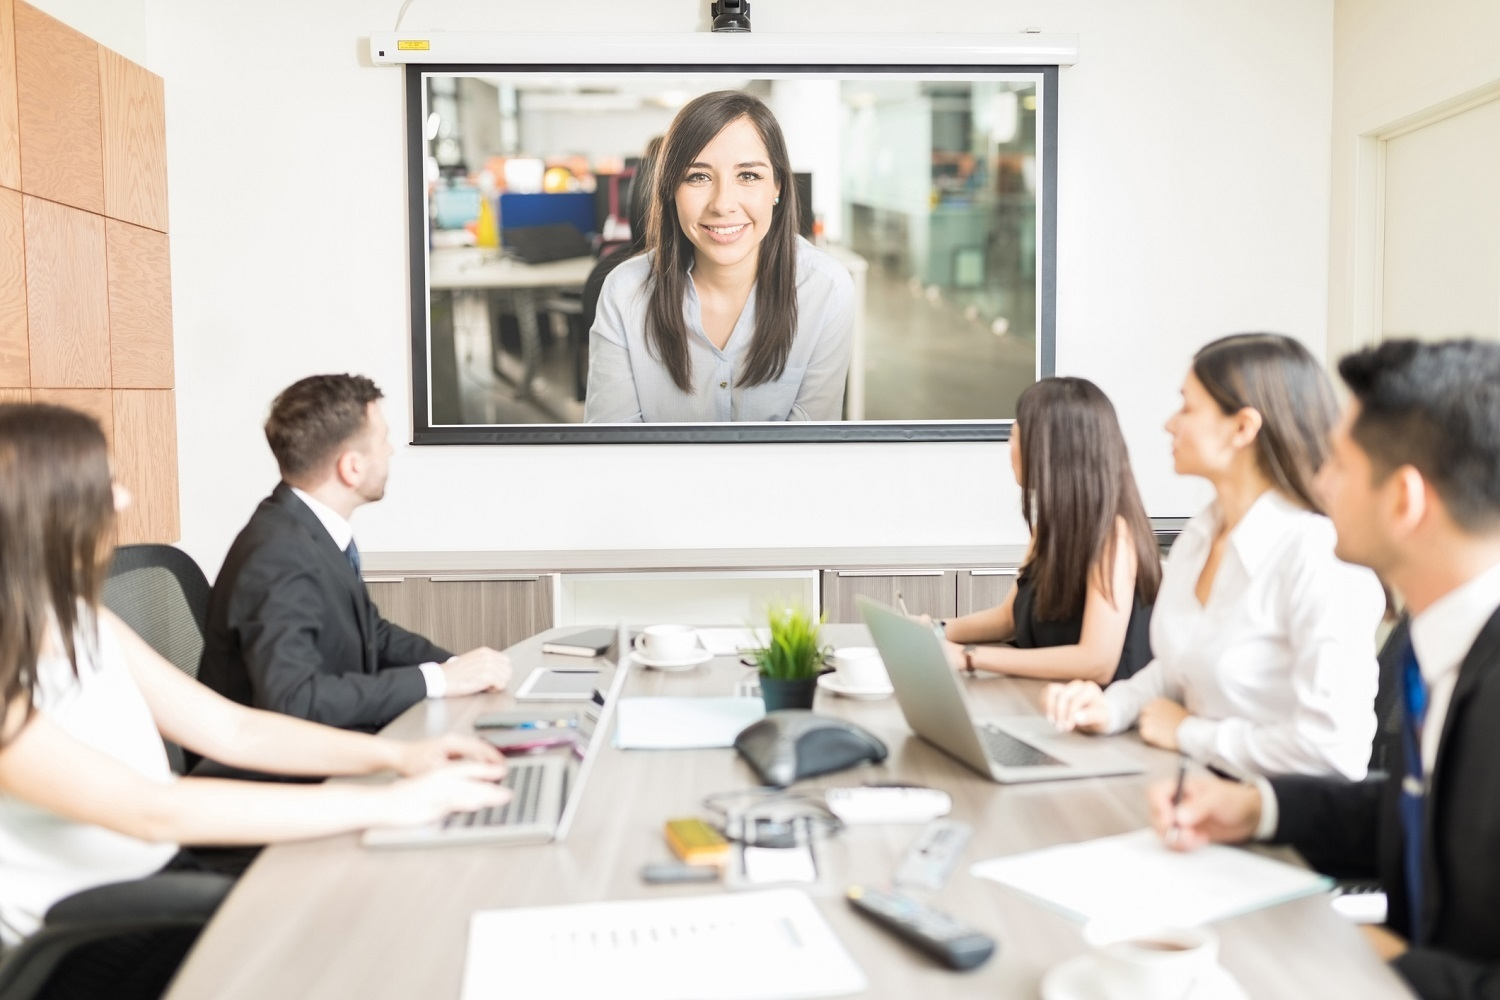 A successful video interview - Do you know how to conduct them?